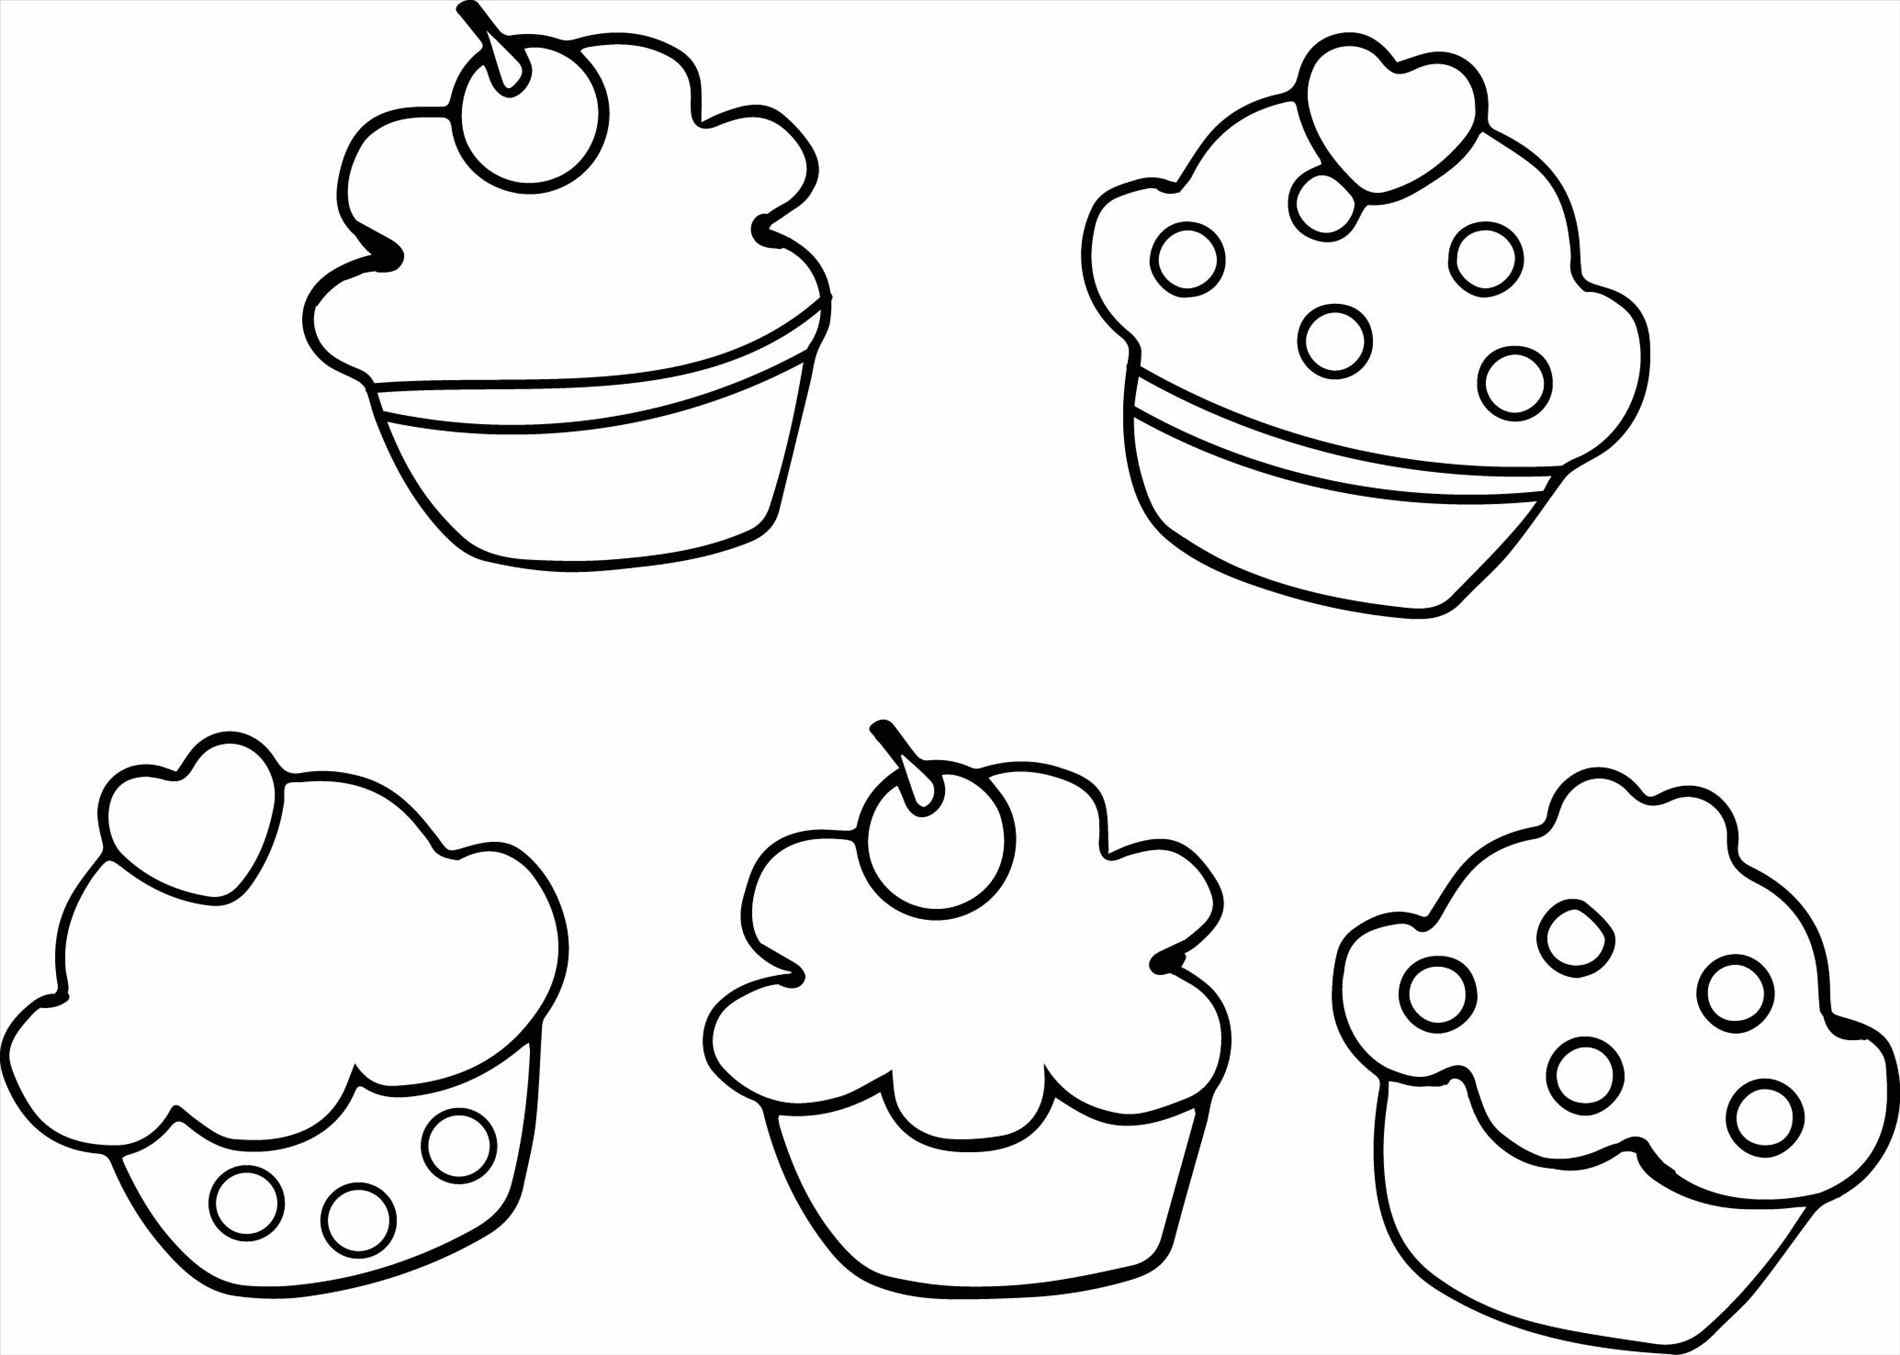 coloring pages cupcakes cupcake with doc mcstuffins as topping coloring page netart pages coloring cupcakes